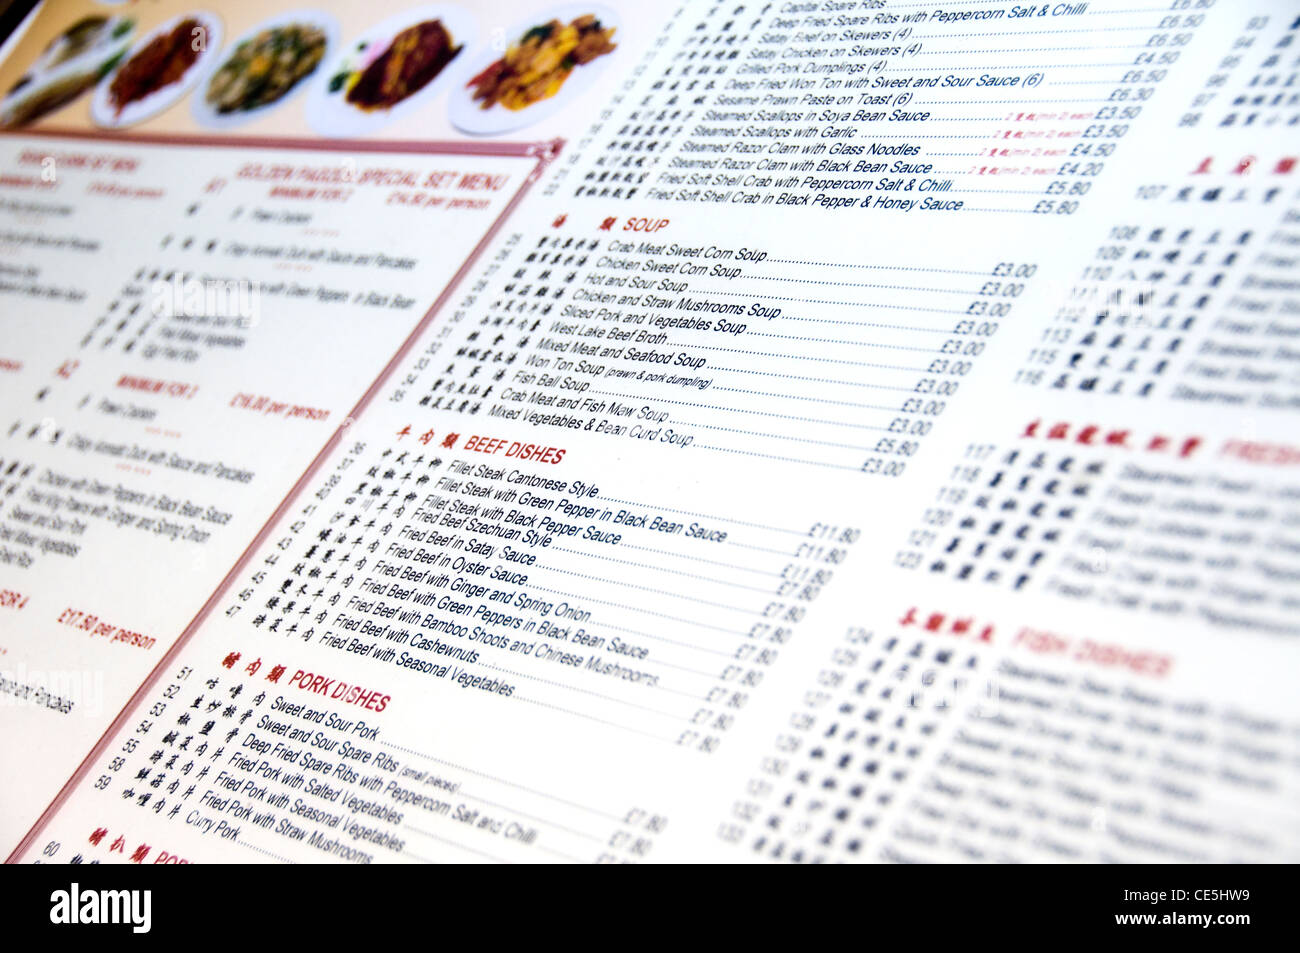 Menu restaurant chinois - Chinatown - Soho, Londres (UK) Photo Stock